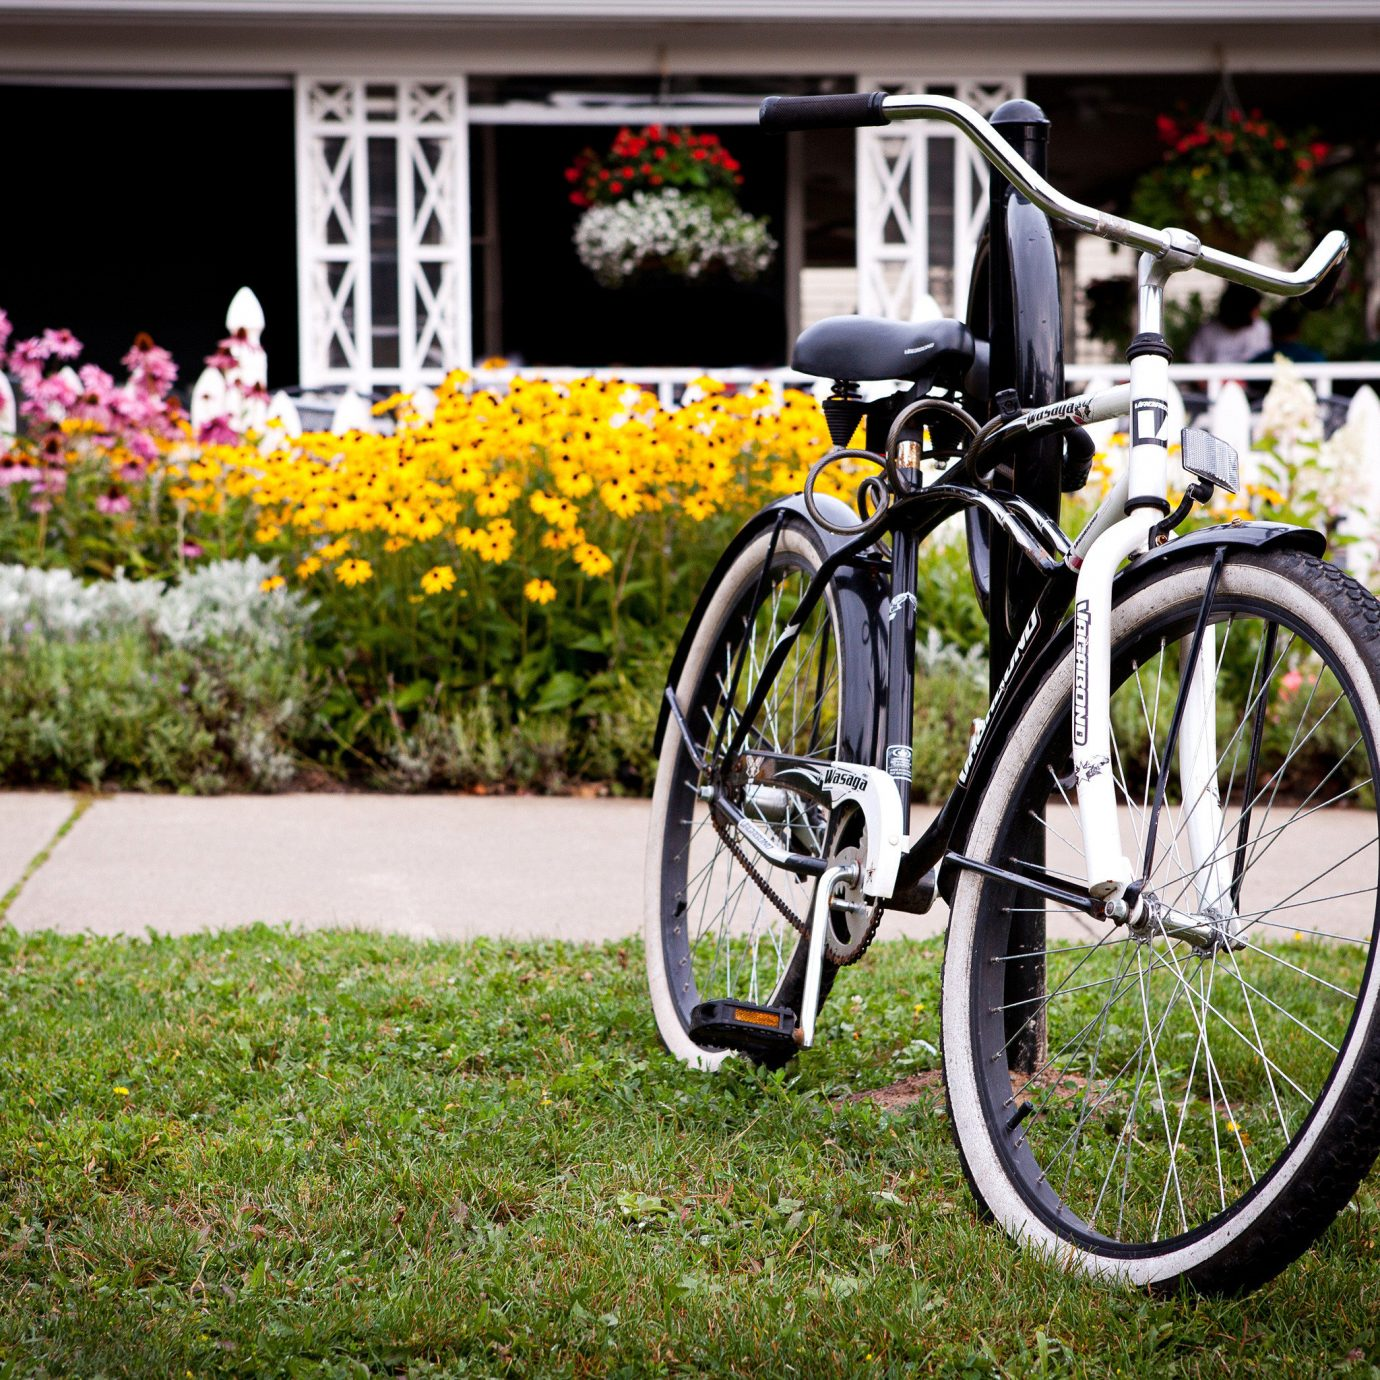 Adventure Exterior Fitness Grounds Outdoor Activities Wellness bicycle grass parked road bicycle flower vehicle land vehicle racing bicycle cyclo cross bicycle cycling wheel mountain bike sports equipment endurance sports road cycling bicycle racing cyclo cross rack bicycle rack